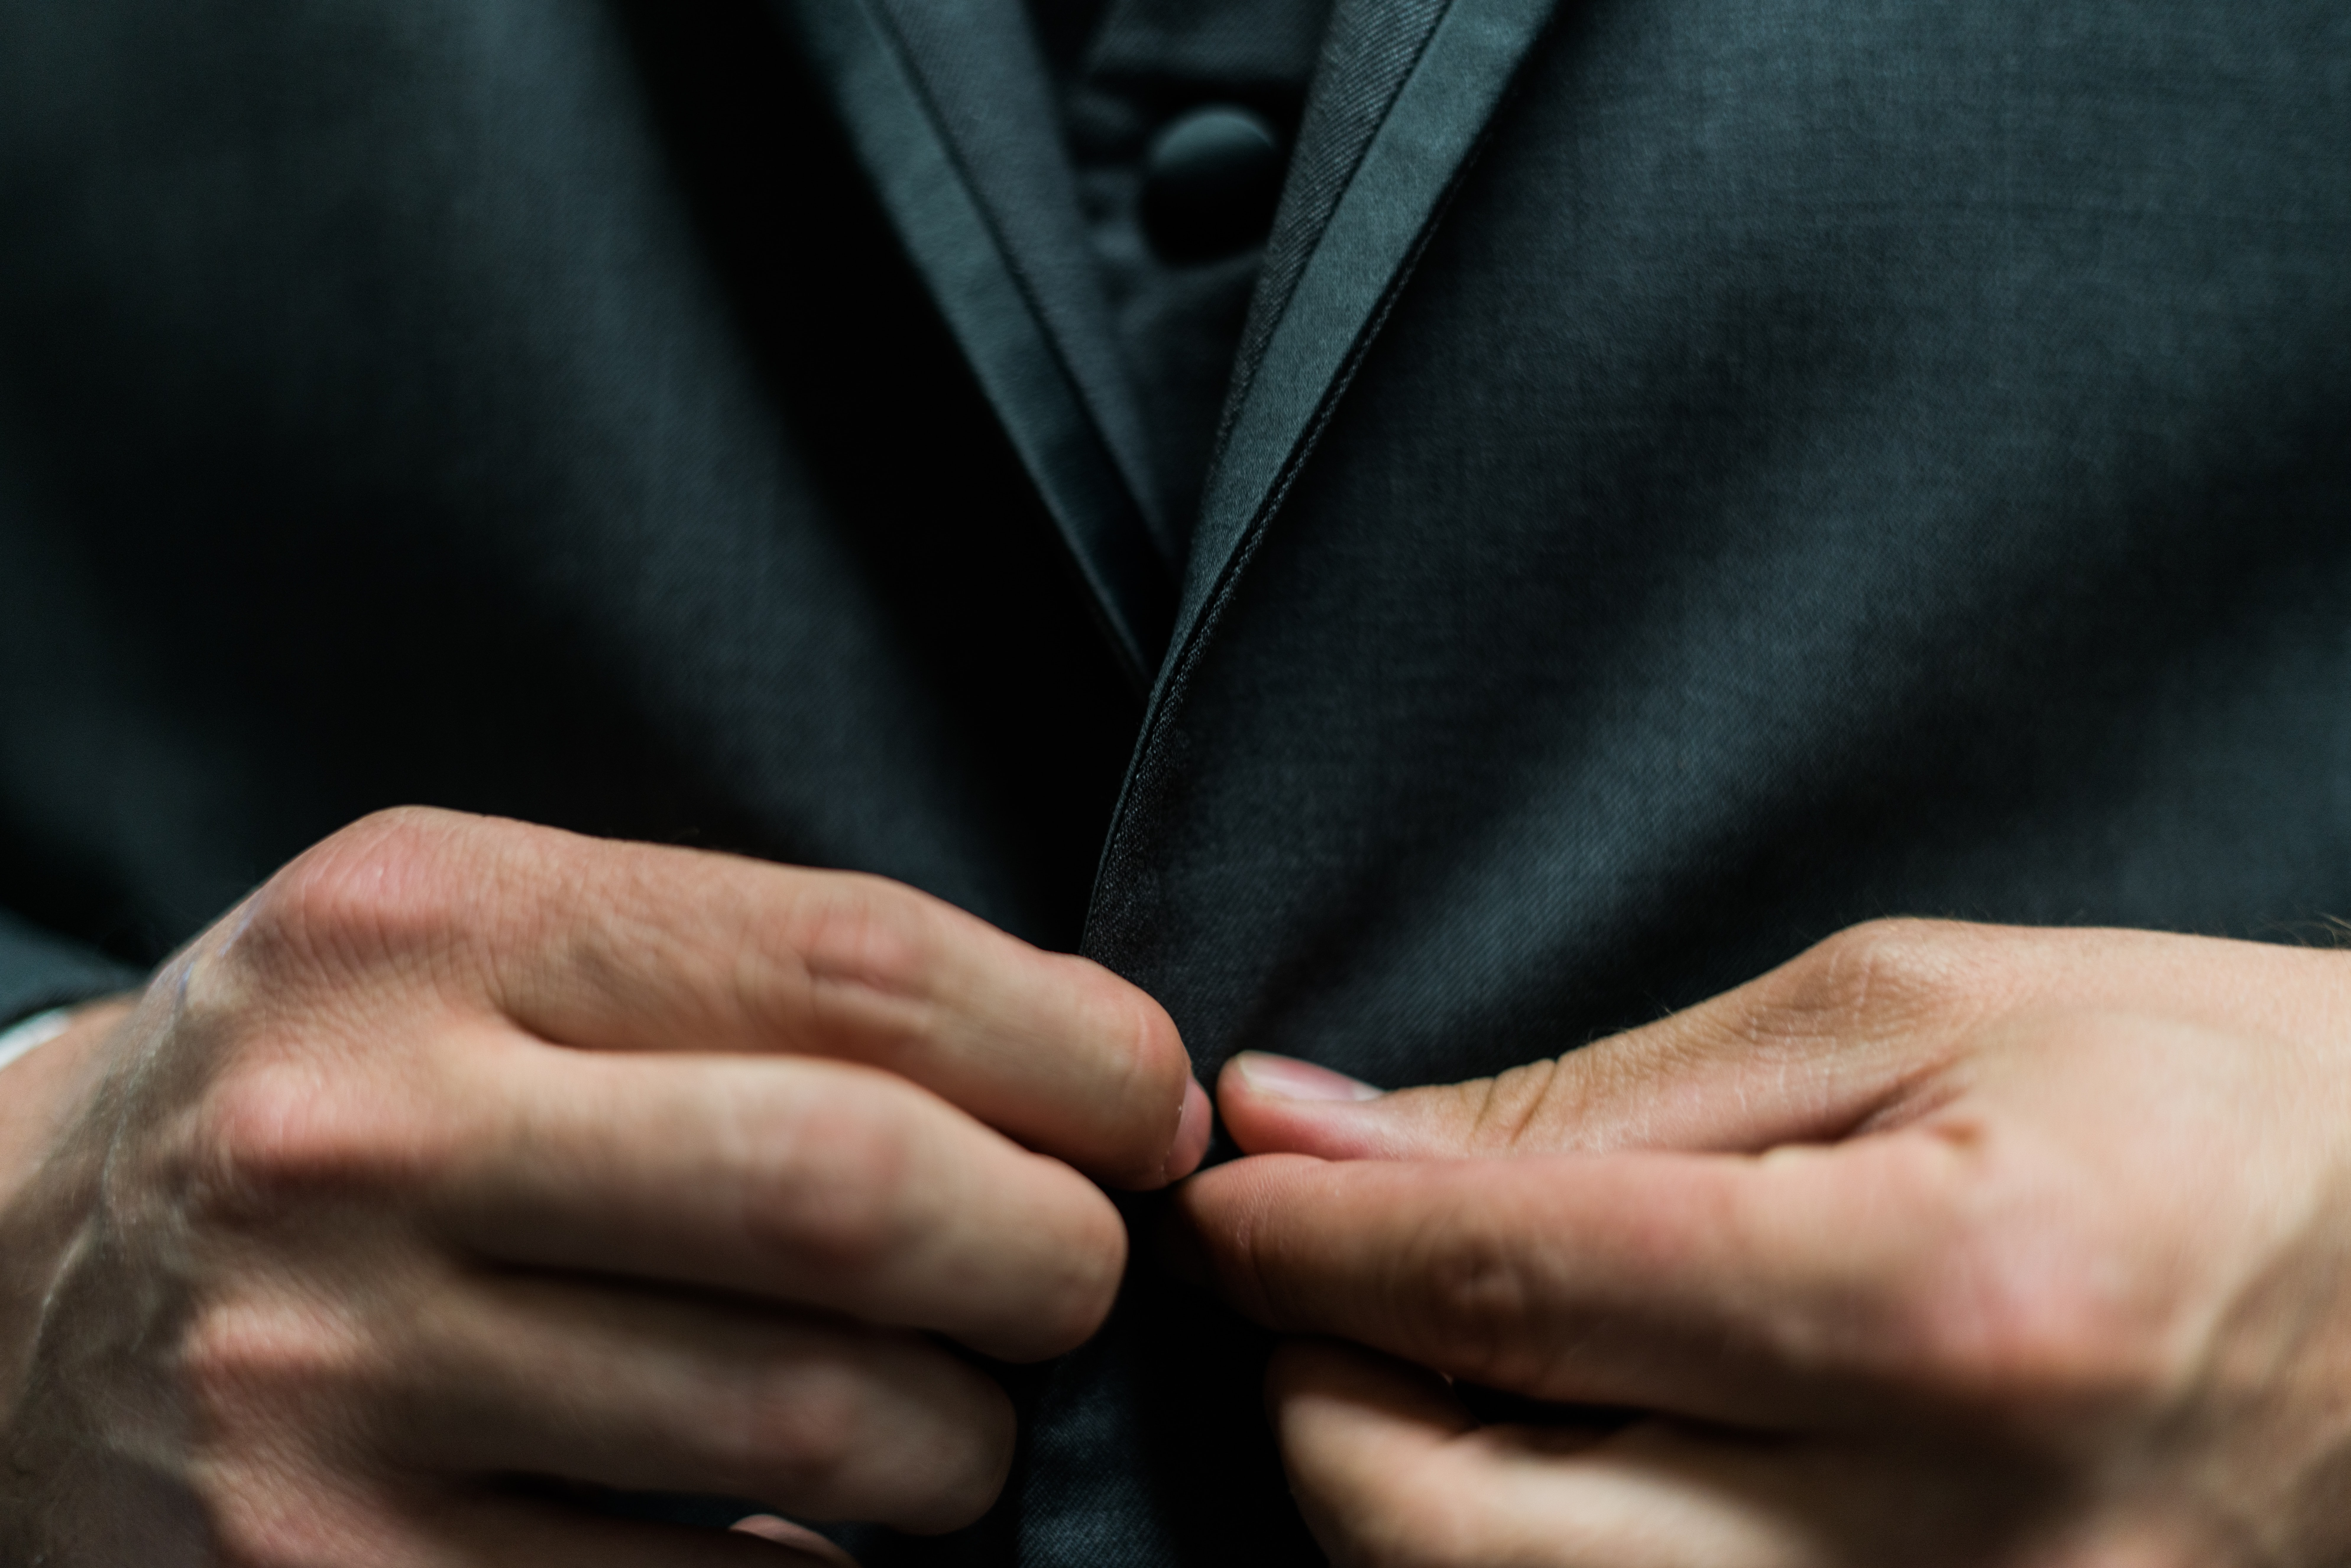 Close-up of a man's hands buttoning his black suit